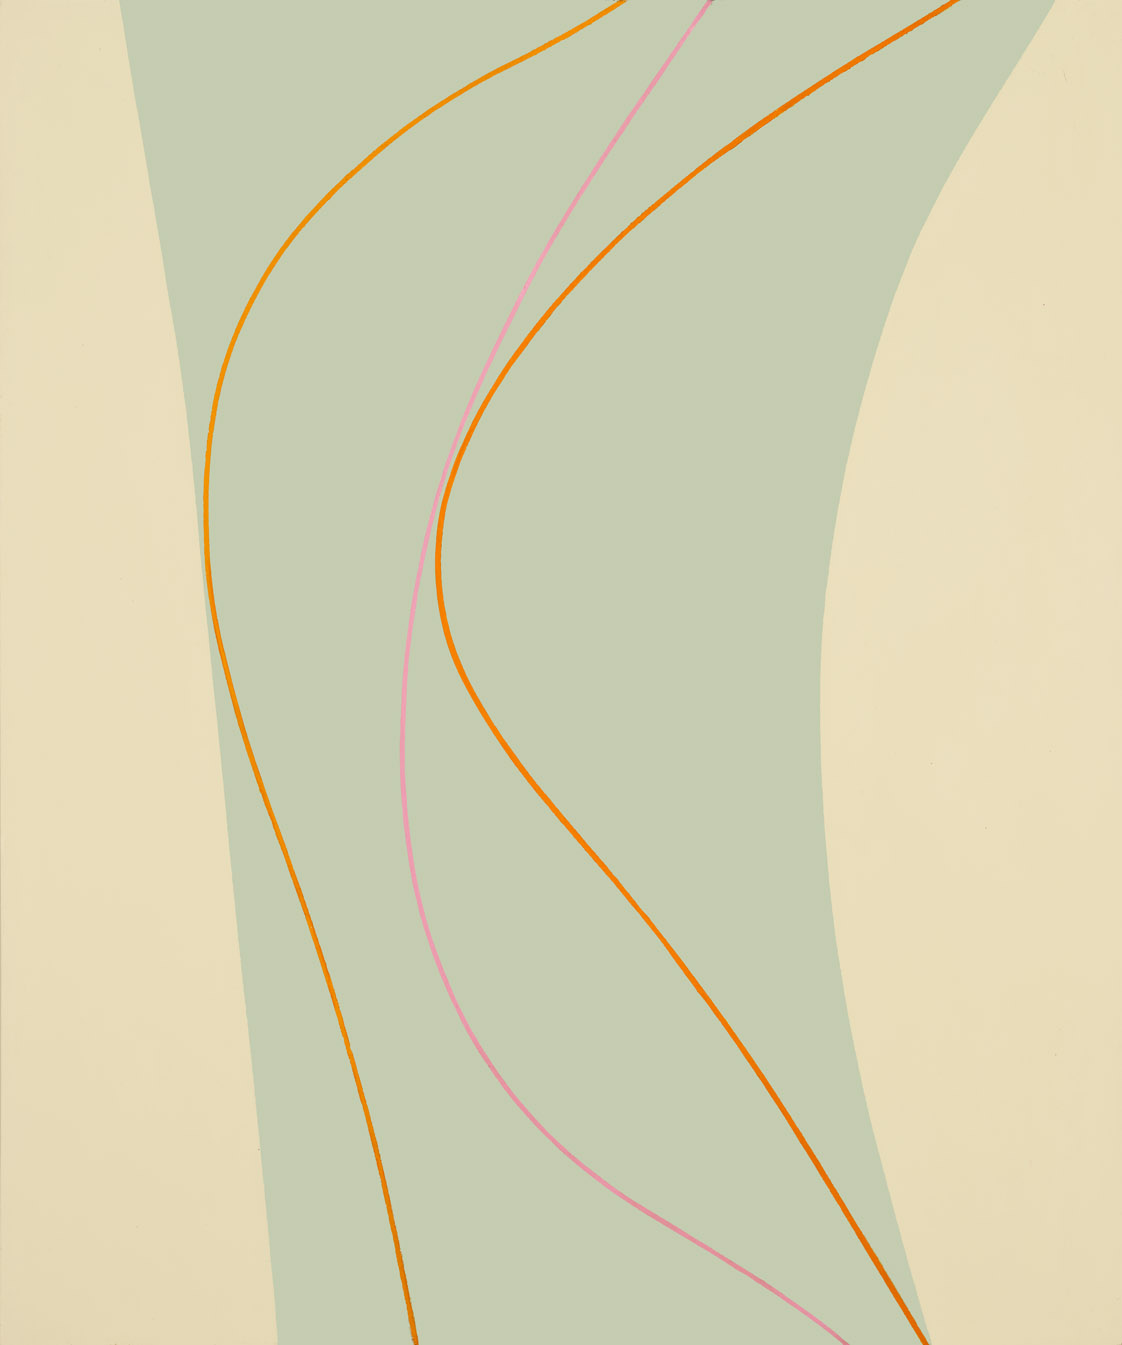 Untitled (September 4) , 1964 oil and enamel on canvas 60 x 50 inches; 152.4 x 127 centimeters